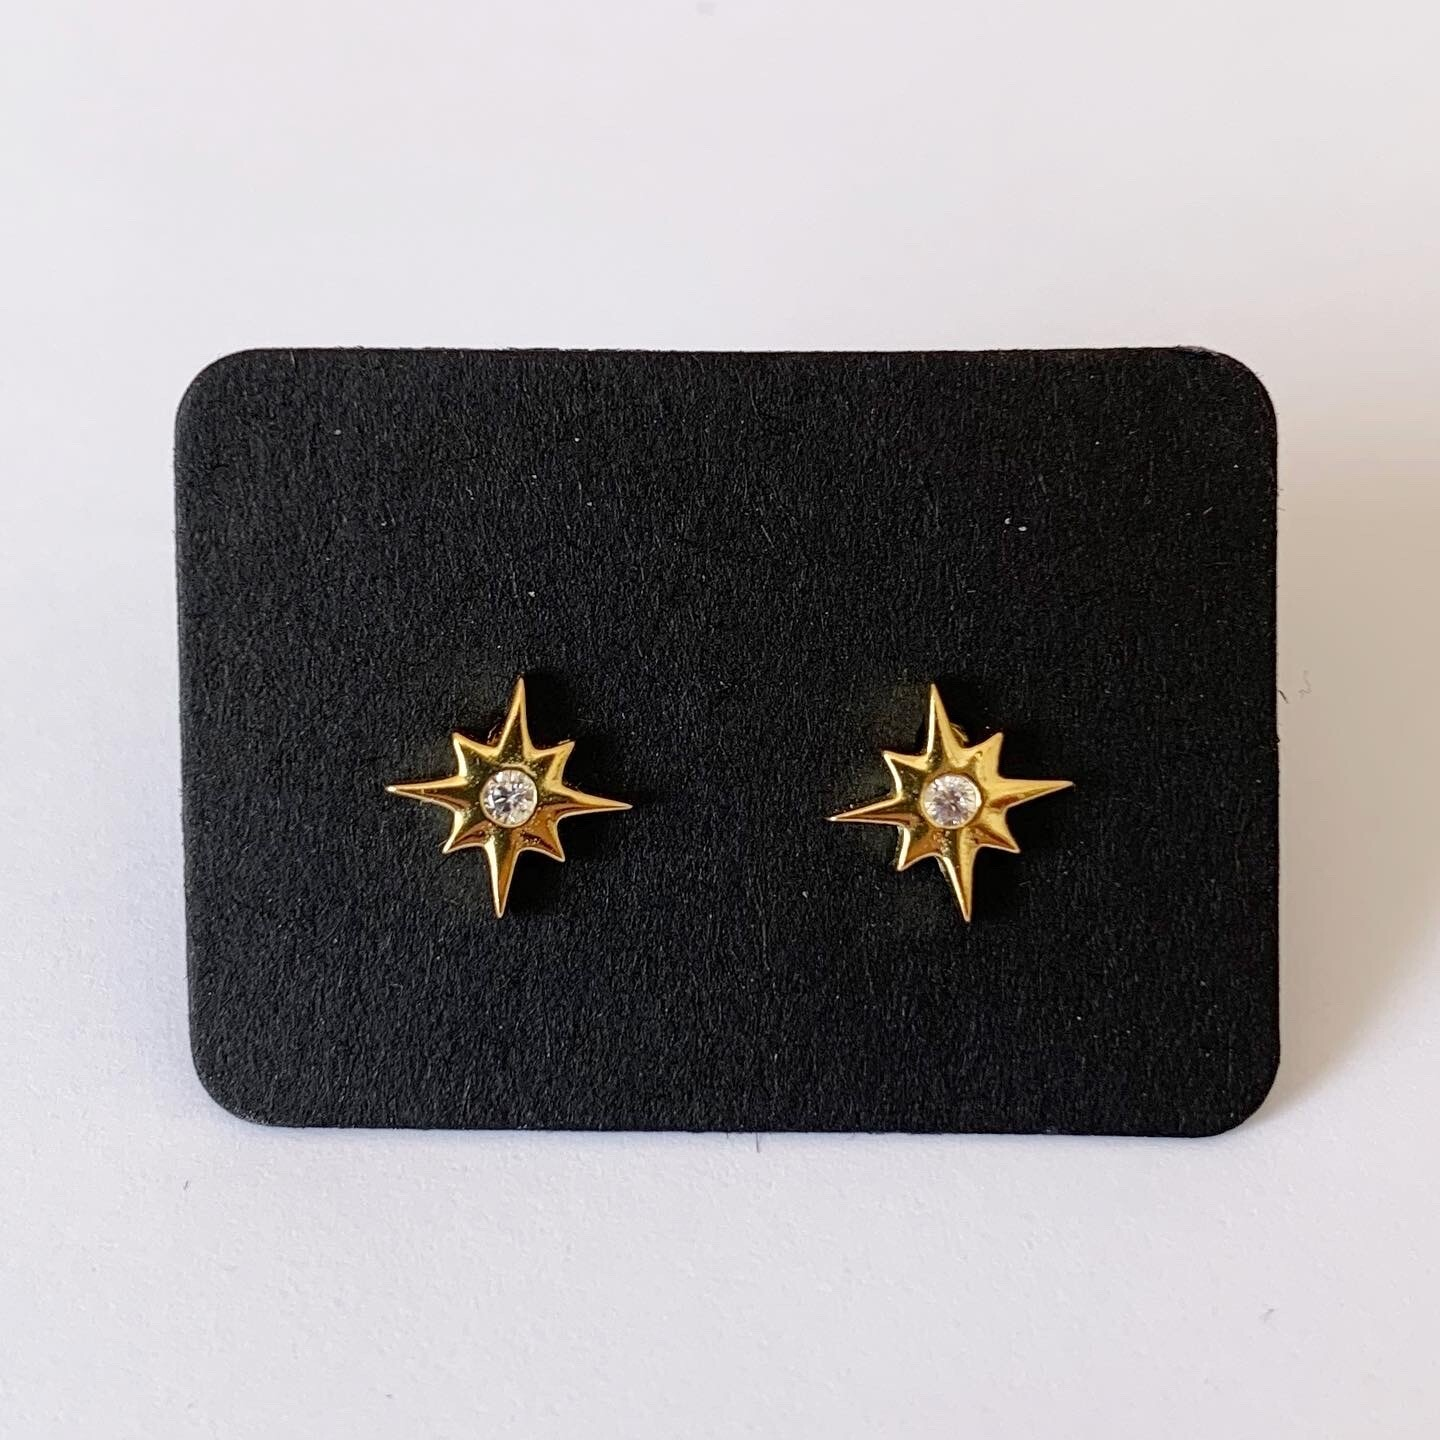 Star knopjes met strass steentje gold plated